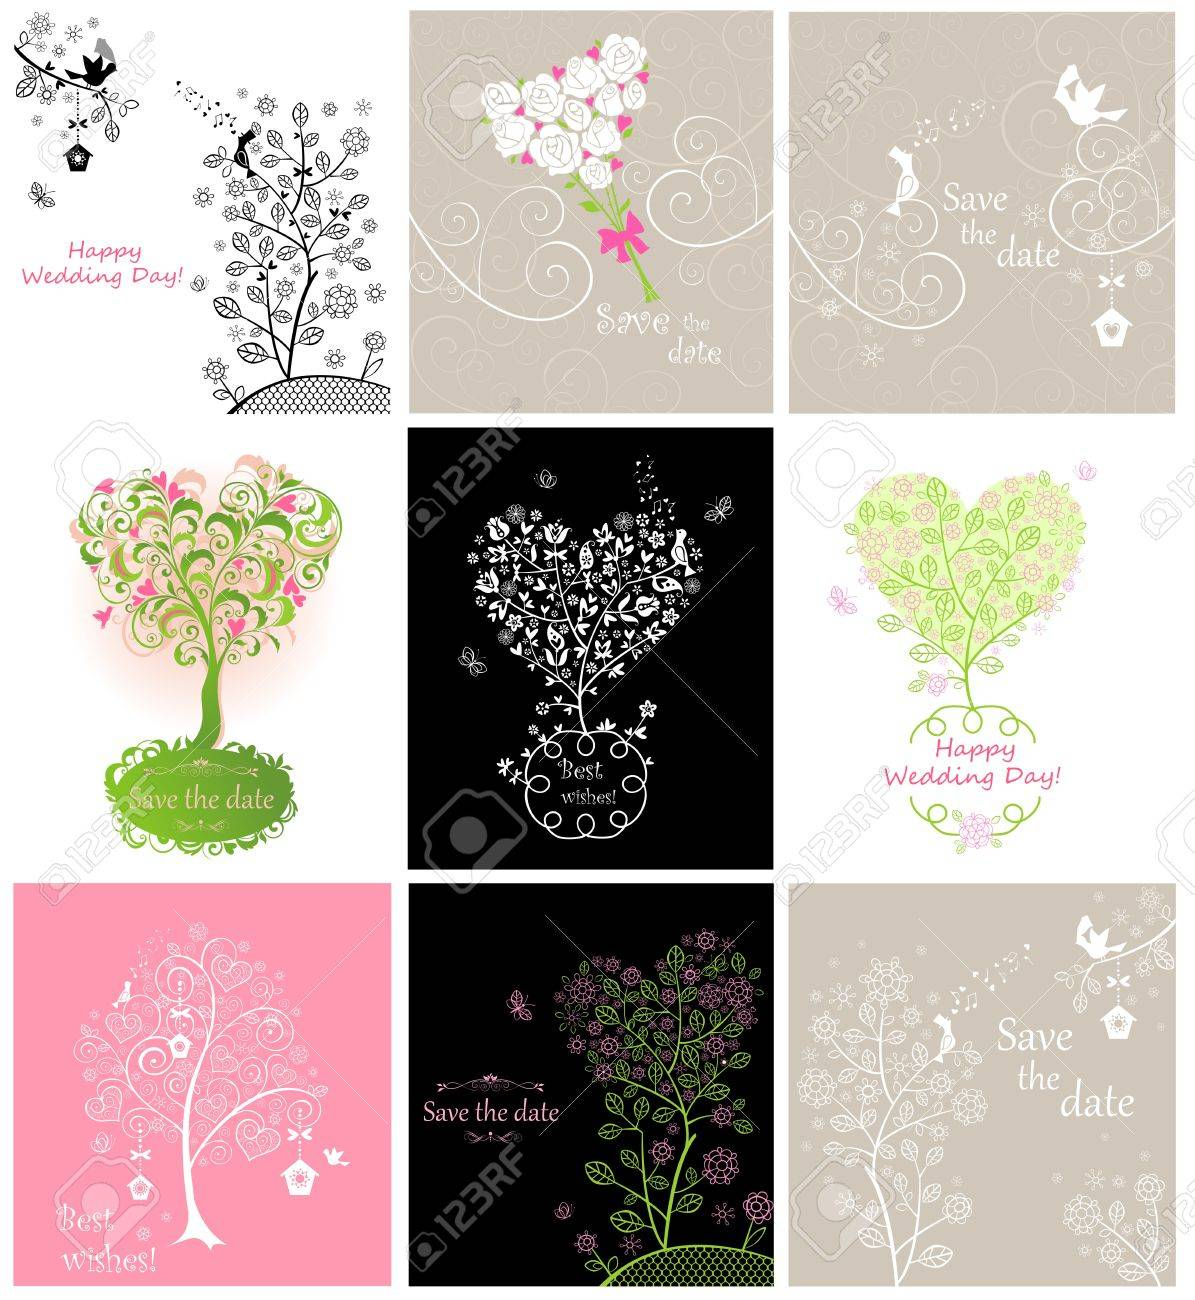 Collection of wedding vintage greeting cards with pair of lovely collection of wedding vintage greeting cards with pair of lovely birds stock vector 53560175 m4hsunfo